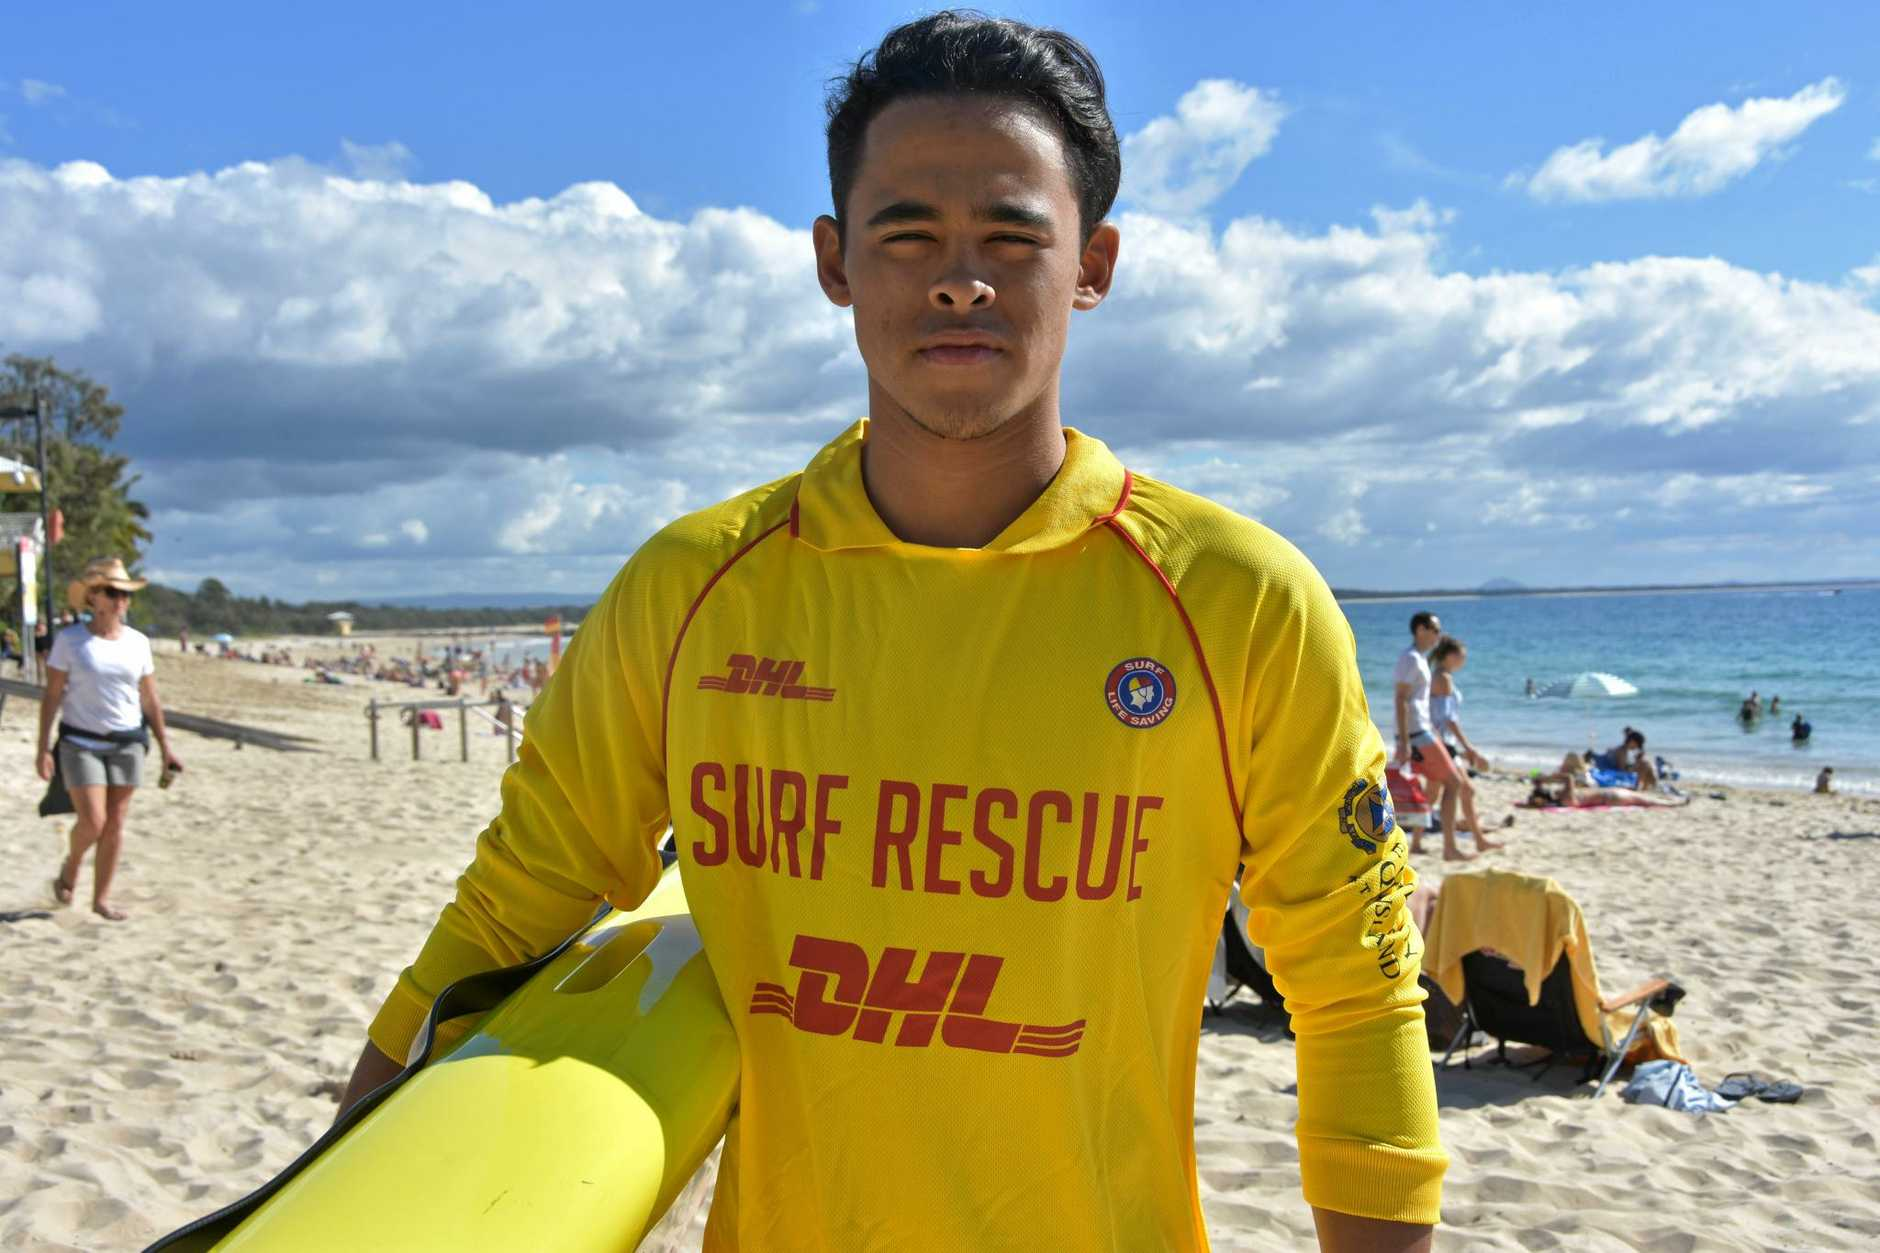 EPIC BATTLE: Lifesaver Robert Lemon wone fight to save his mate from drowning.